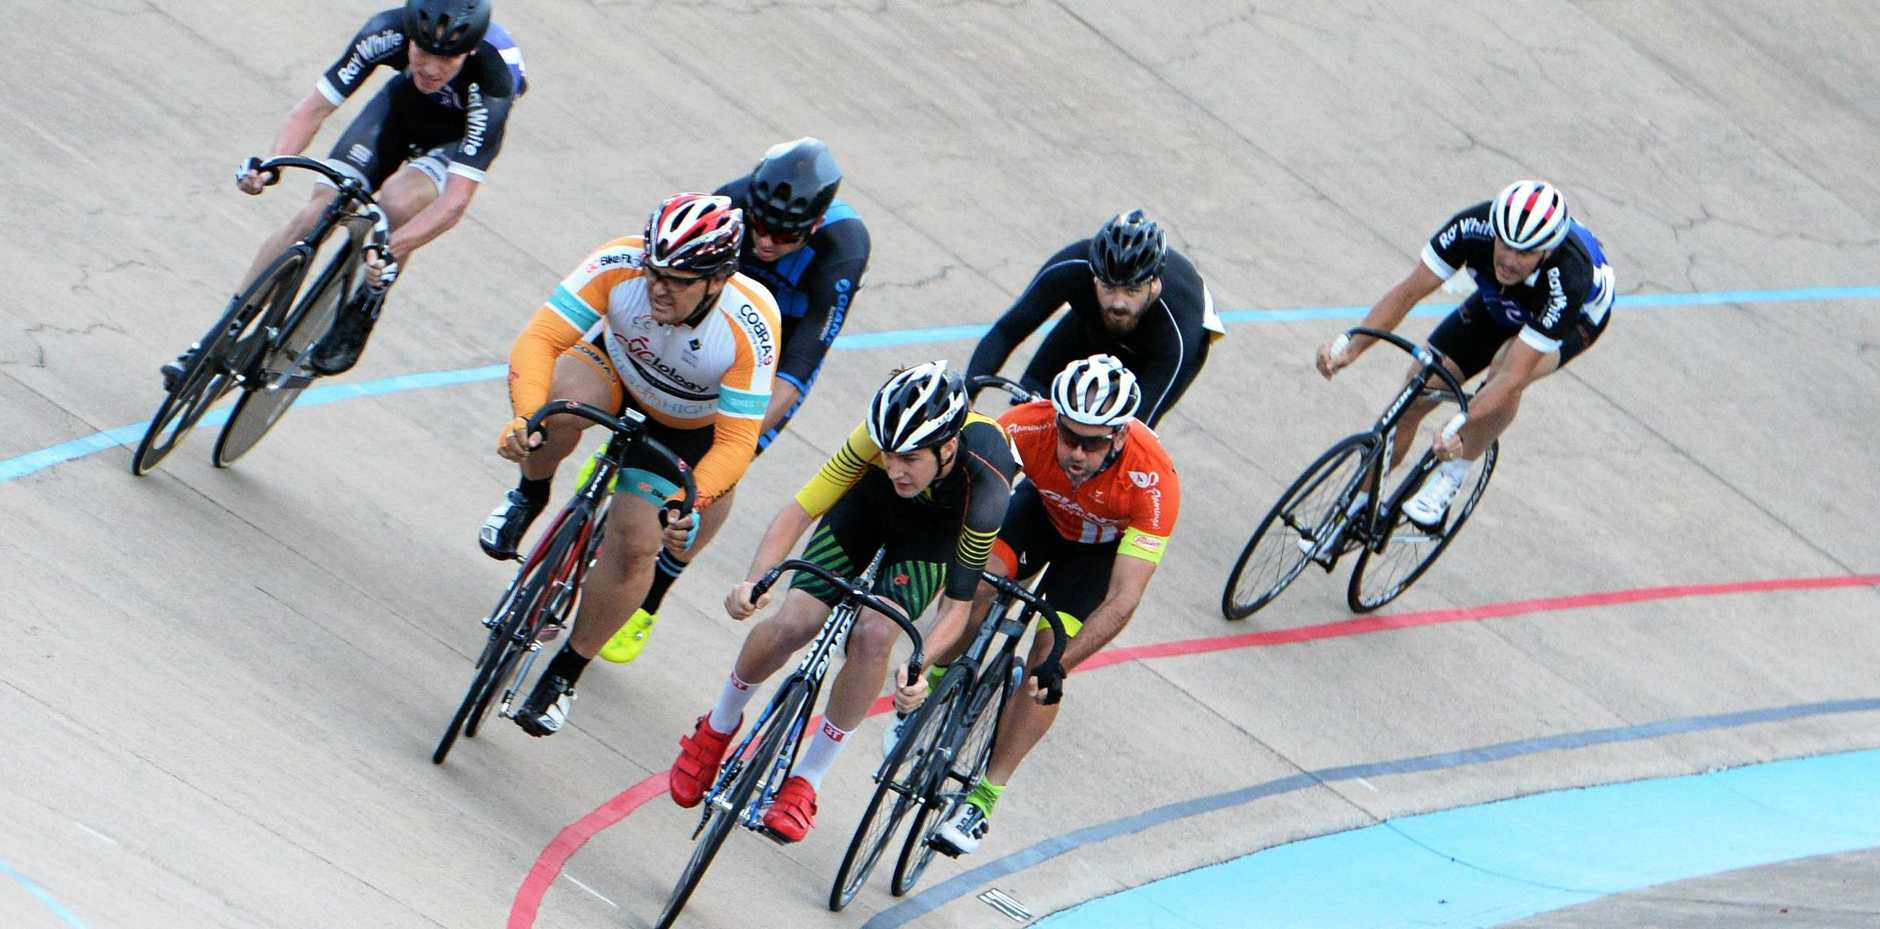 The Rockhampton Cup on Wheels continues at the Kenrick Tucker Velodrome today.